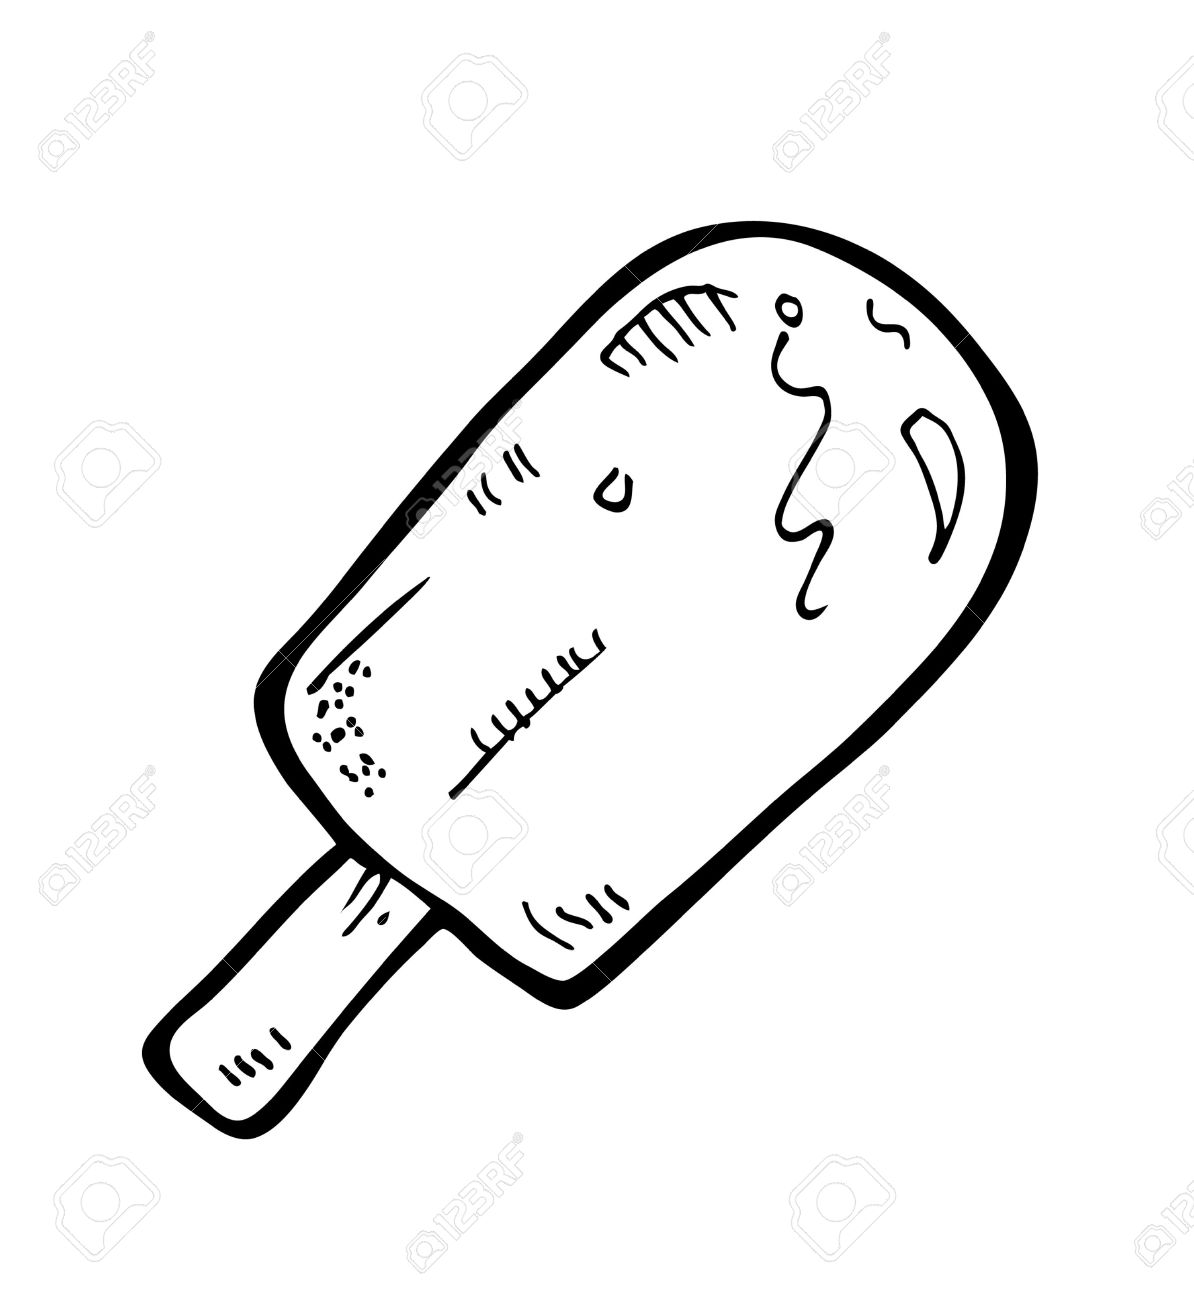 Popsicle clipart black and white #3